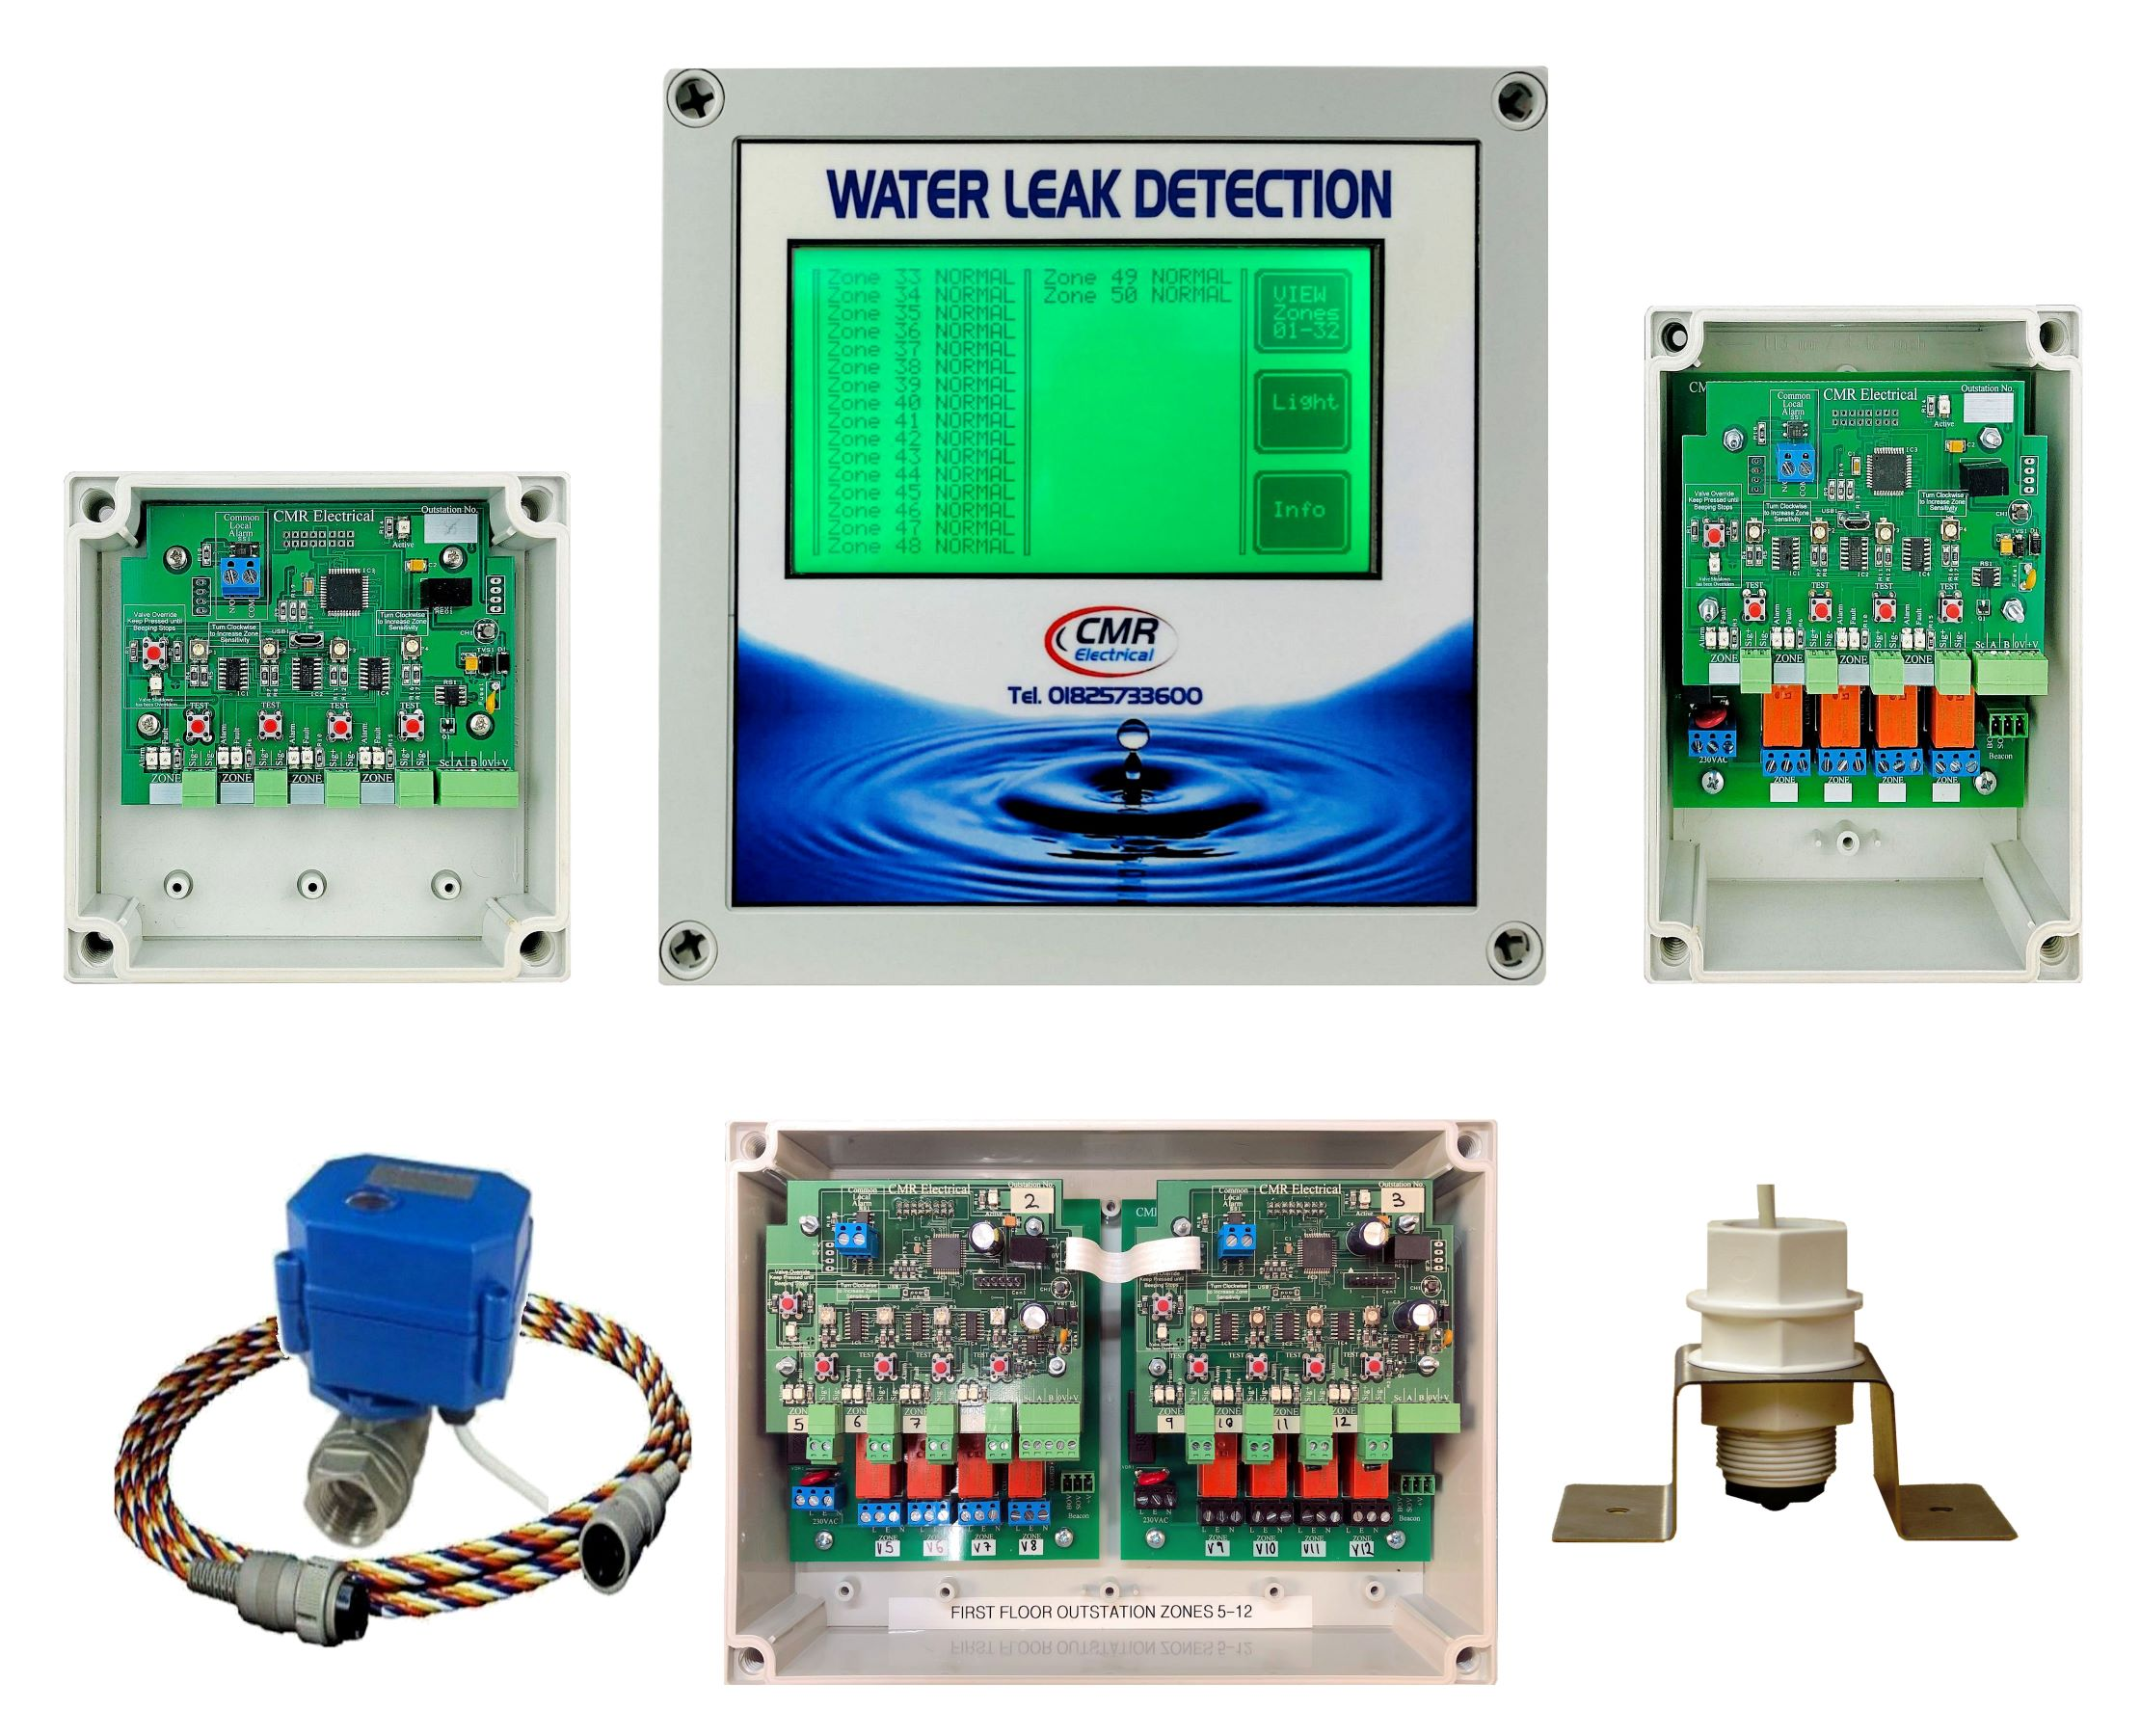 LD64 alarm unit and outstations